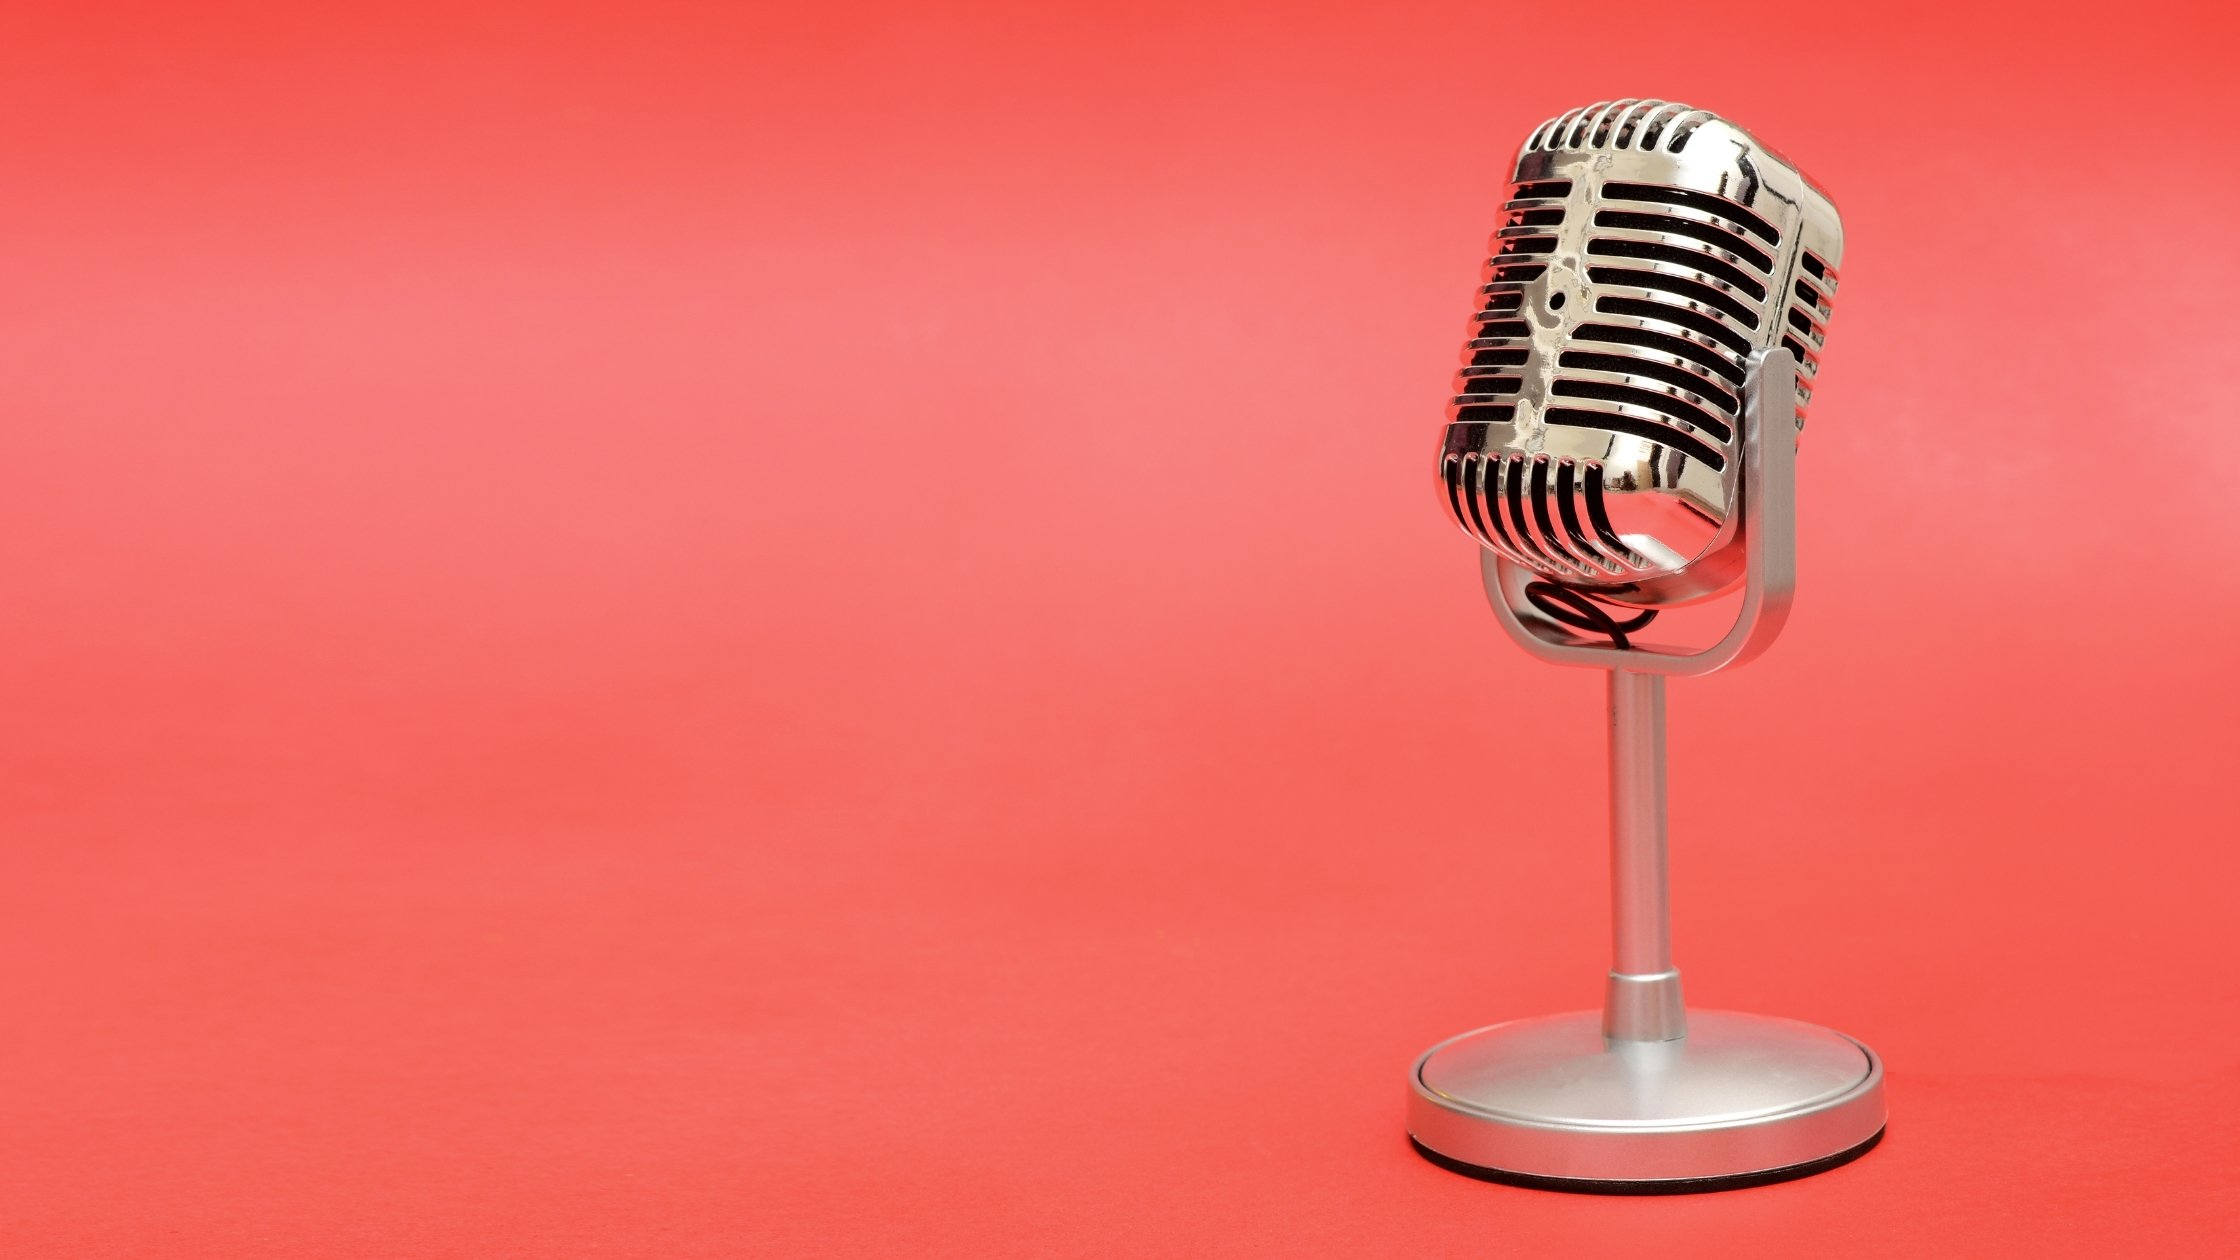 Podcast PR, Podcast Marketing, Podcast PR and Marketing